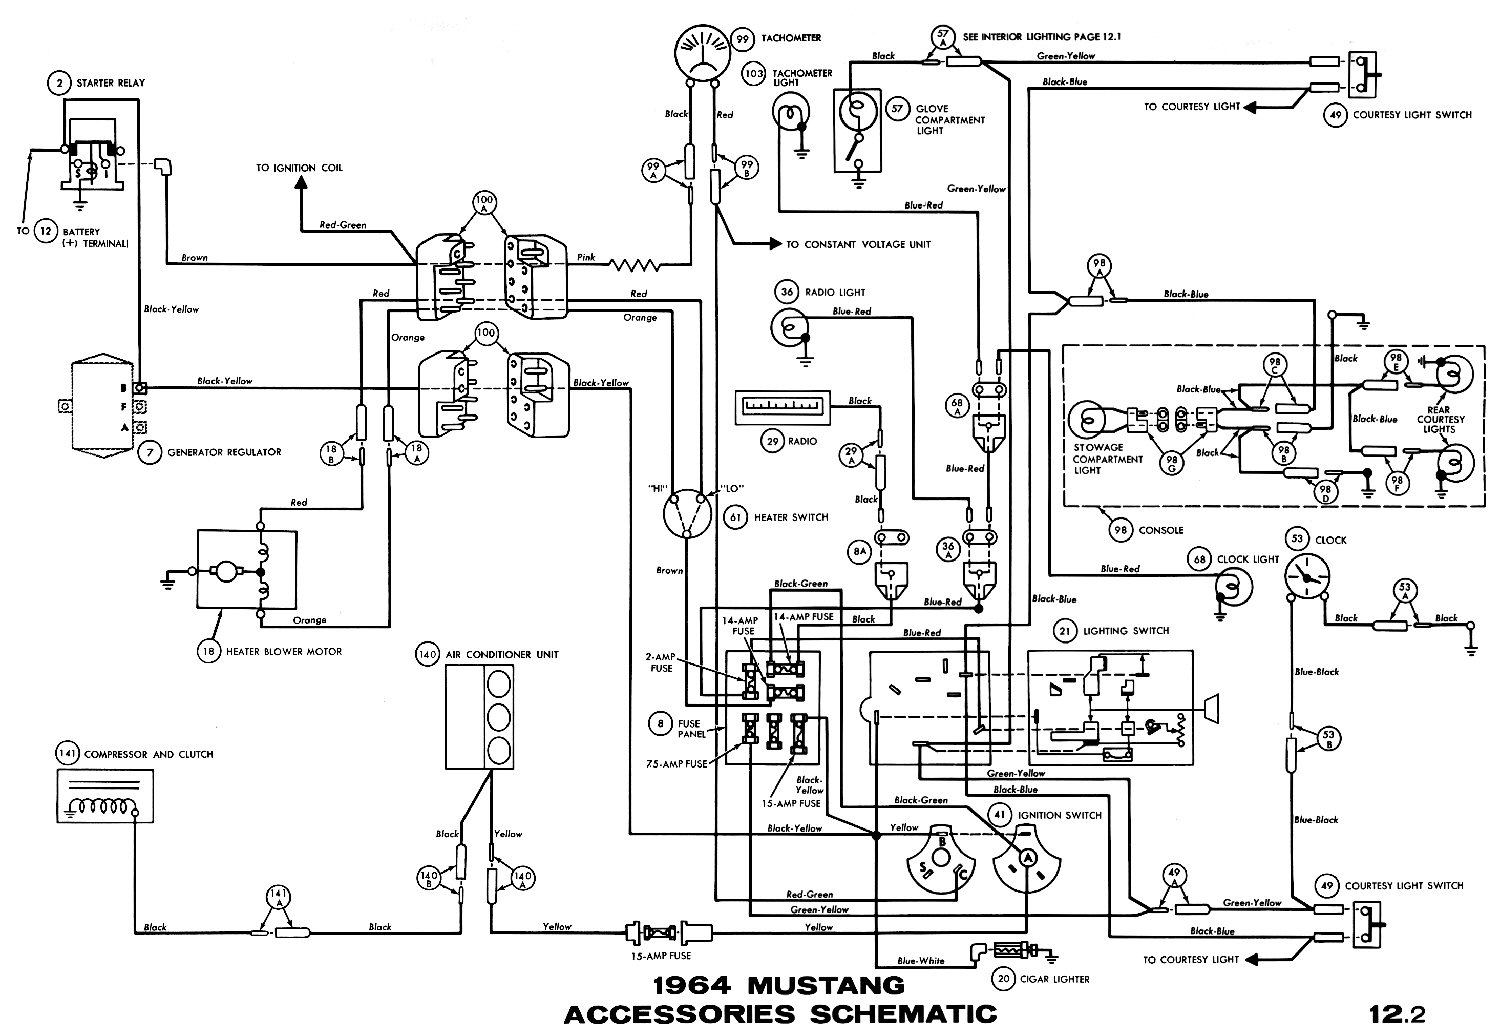 1964m 2014 mustang wiring diagram on 2014 download wirning diagrams 2000 ford mustang wiring diagram at bakdesigns.co